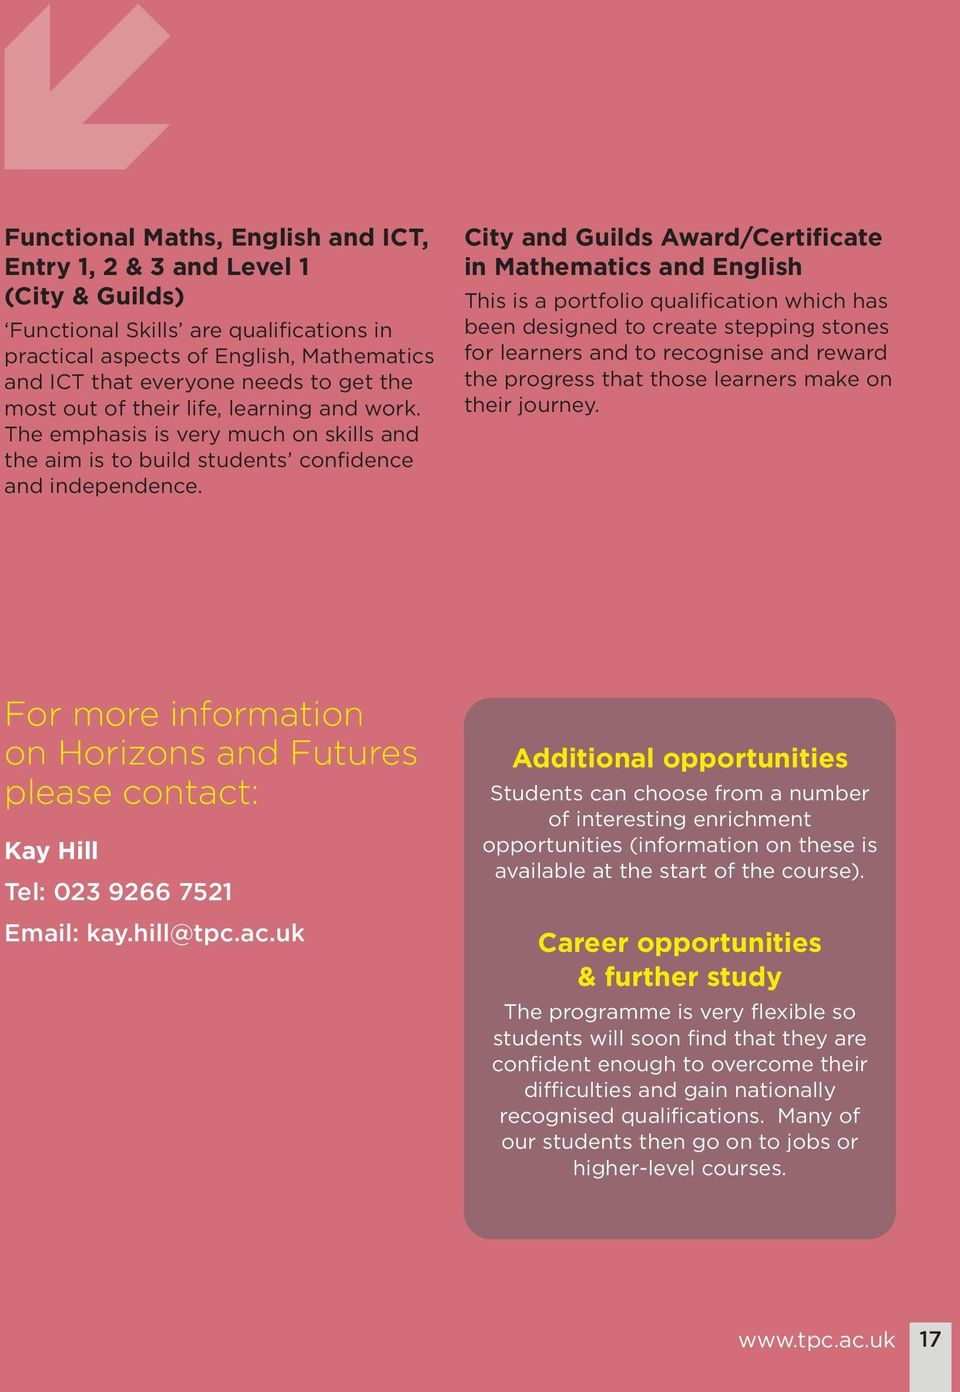 City and Guilds Award/Certificate in Mathematics and English This is a portfolio qualification which has been designed to create stepping stones for learners and to recognise and reward the progress